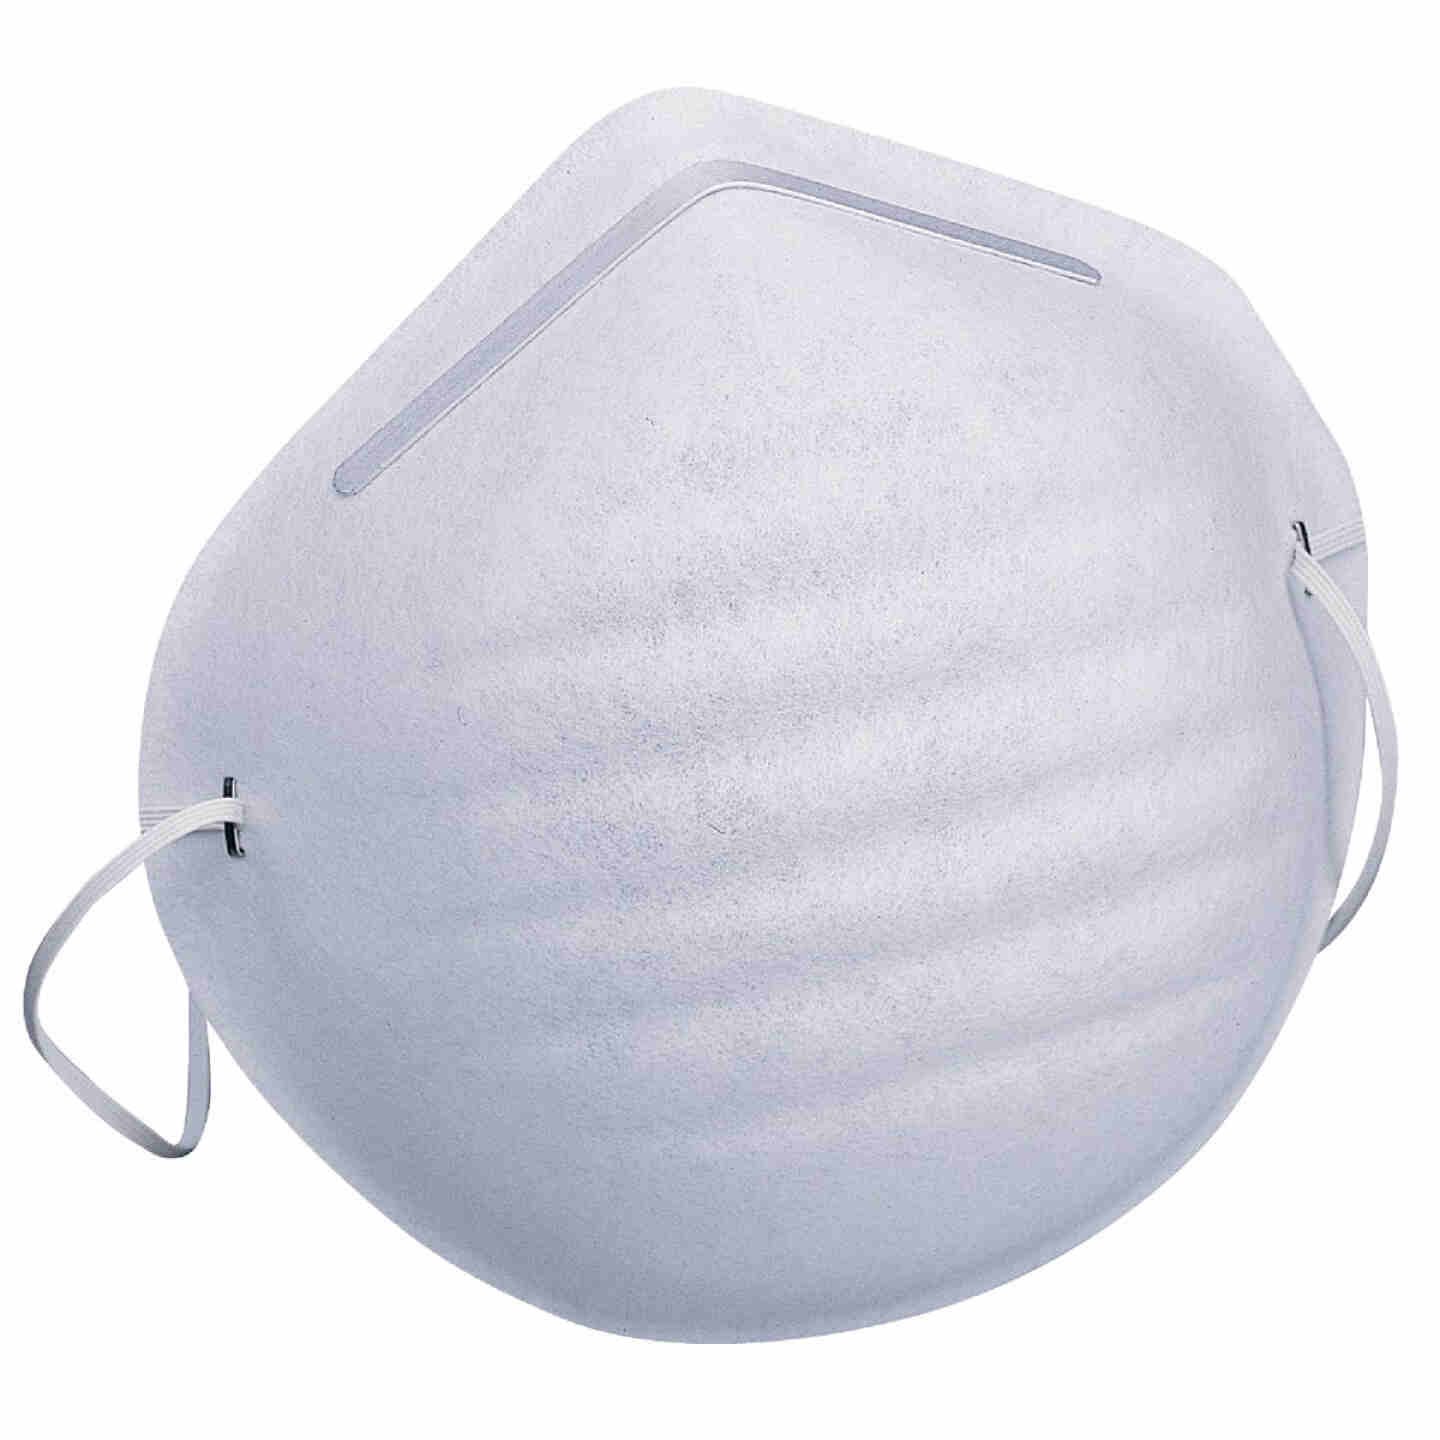 Safety Works Disposable Dust Mask (5-Pack) Image 1